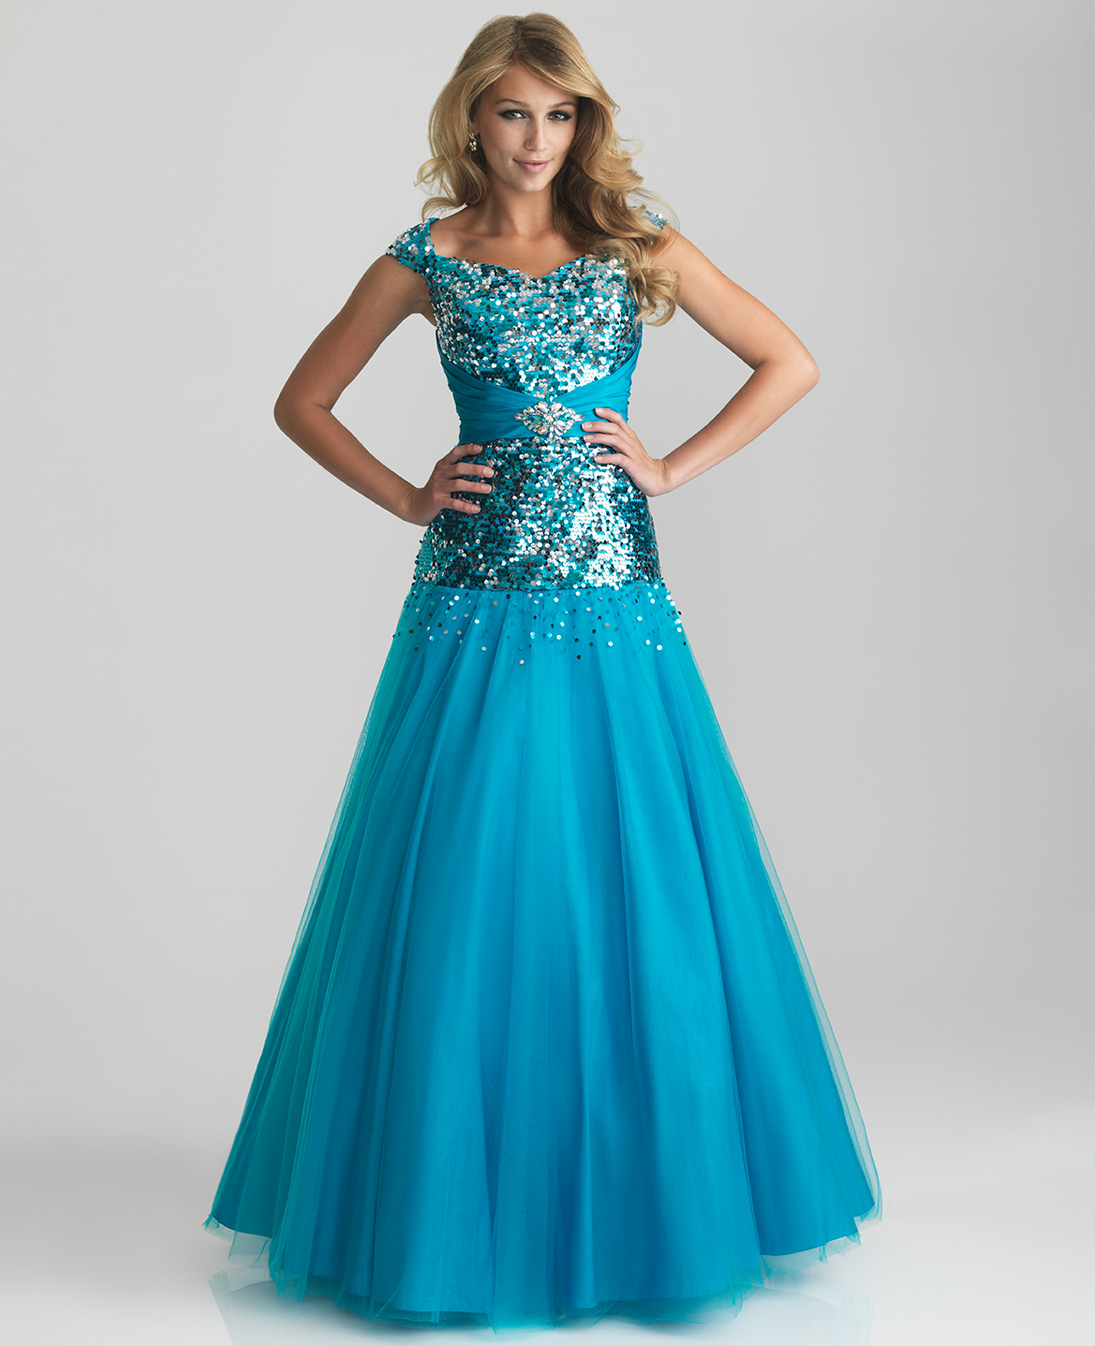 Formal Gowns: LONG HAIRCUTS FOR WOMEN: MODEST PROM DRESSES: IDEAS TO GET